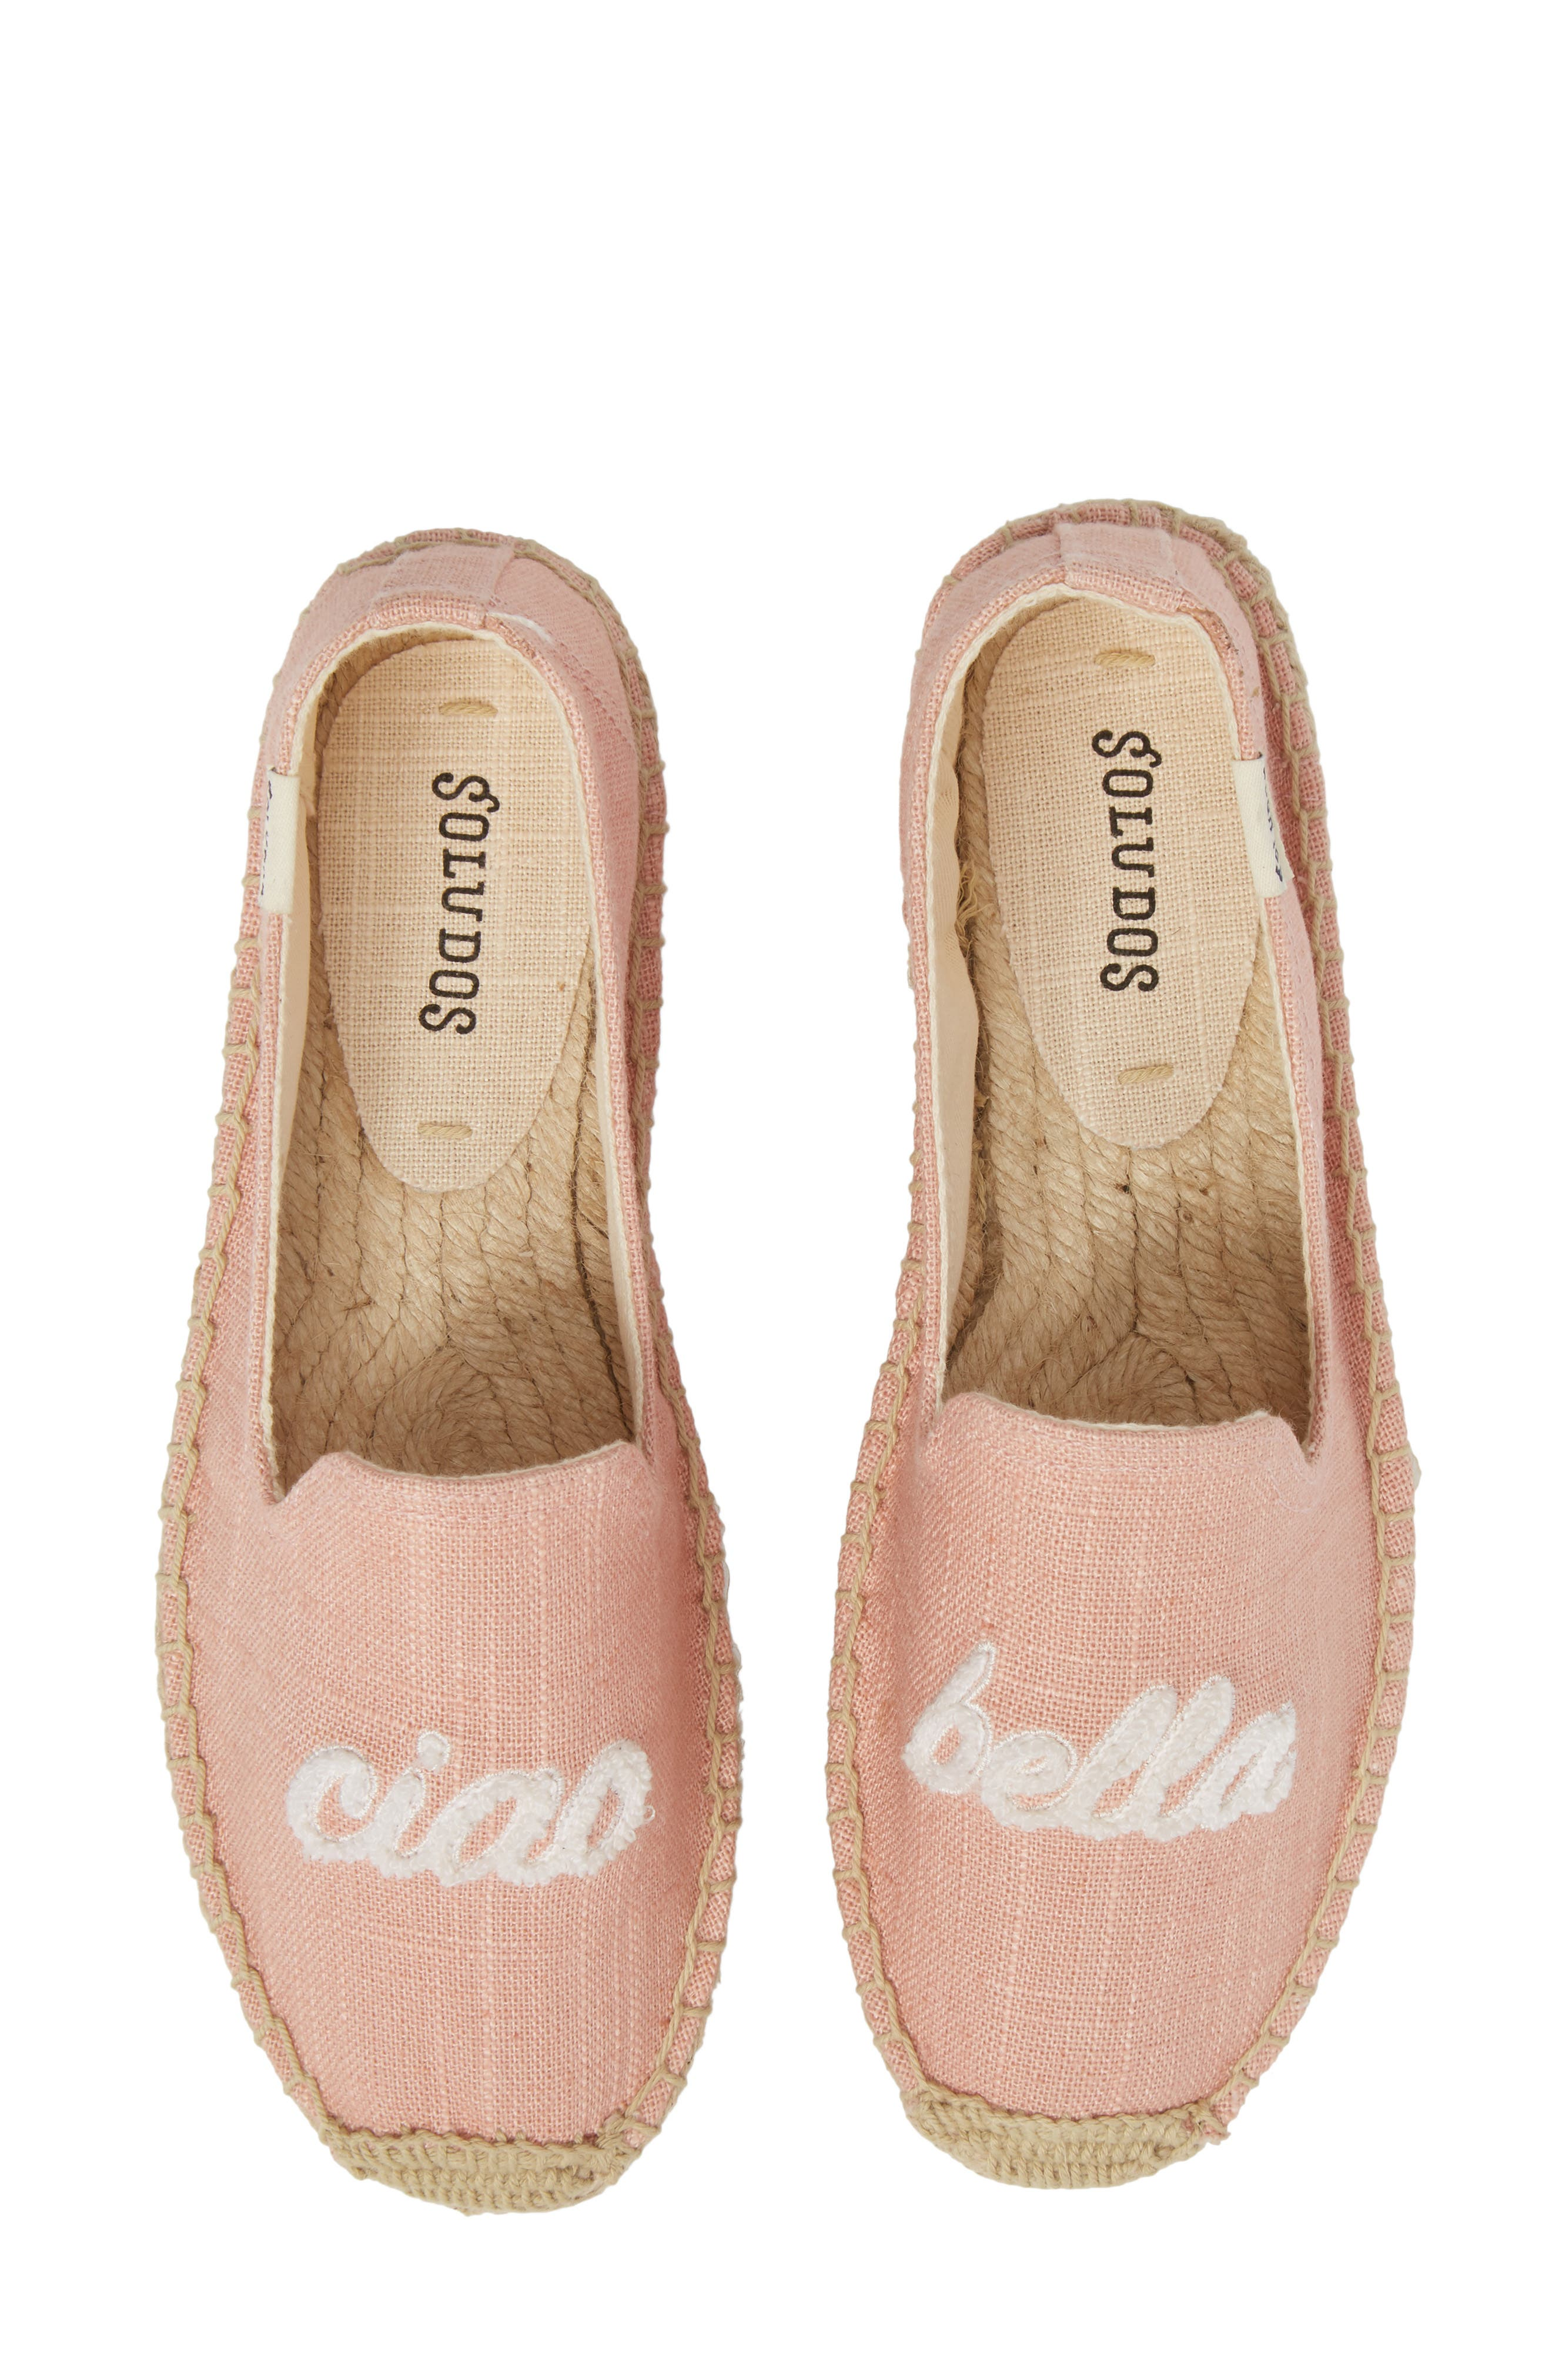 Soludos Ciao Bella Espadrille Flat- Pink